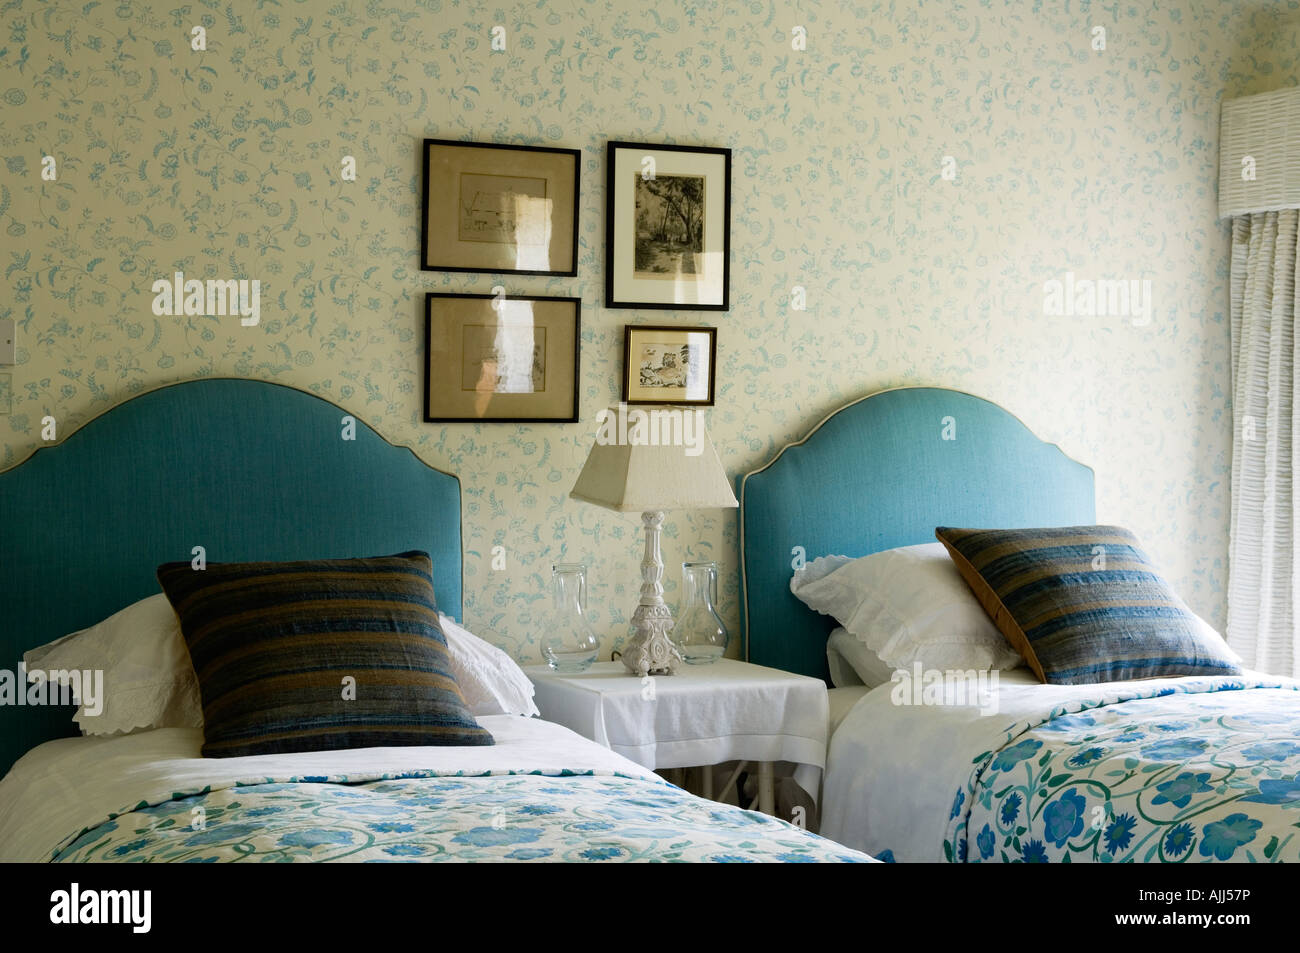 Bedroom with turquoise twin beds and designer patterned wall paper in 17th century Irish castle. - Stock Image